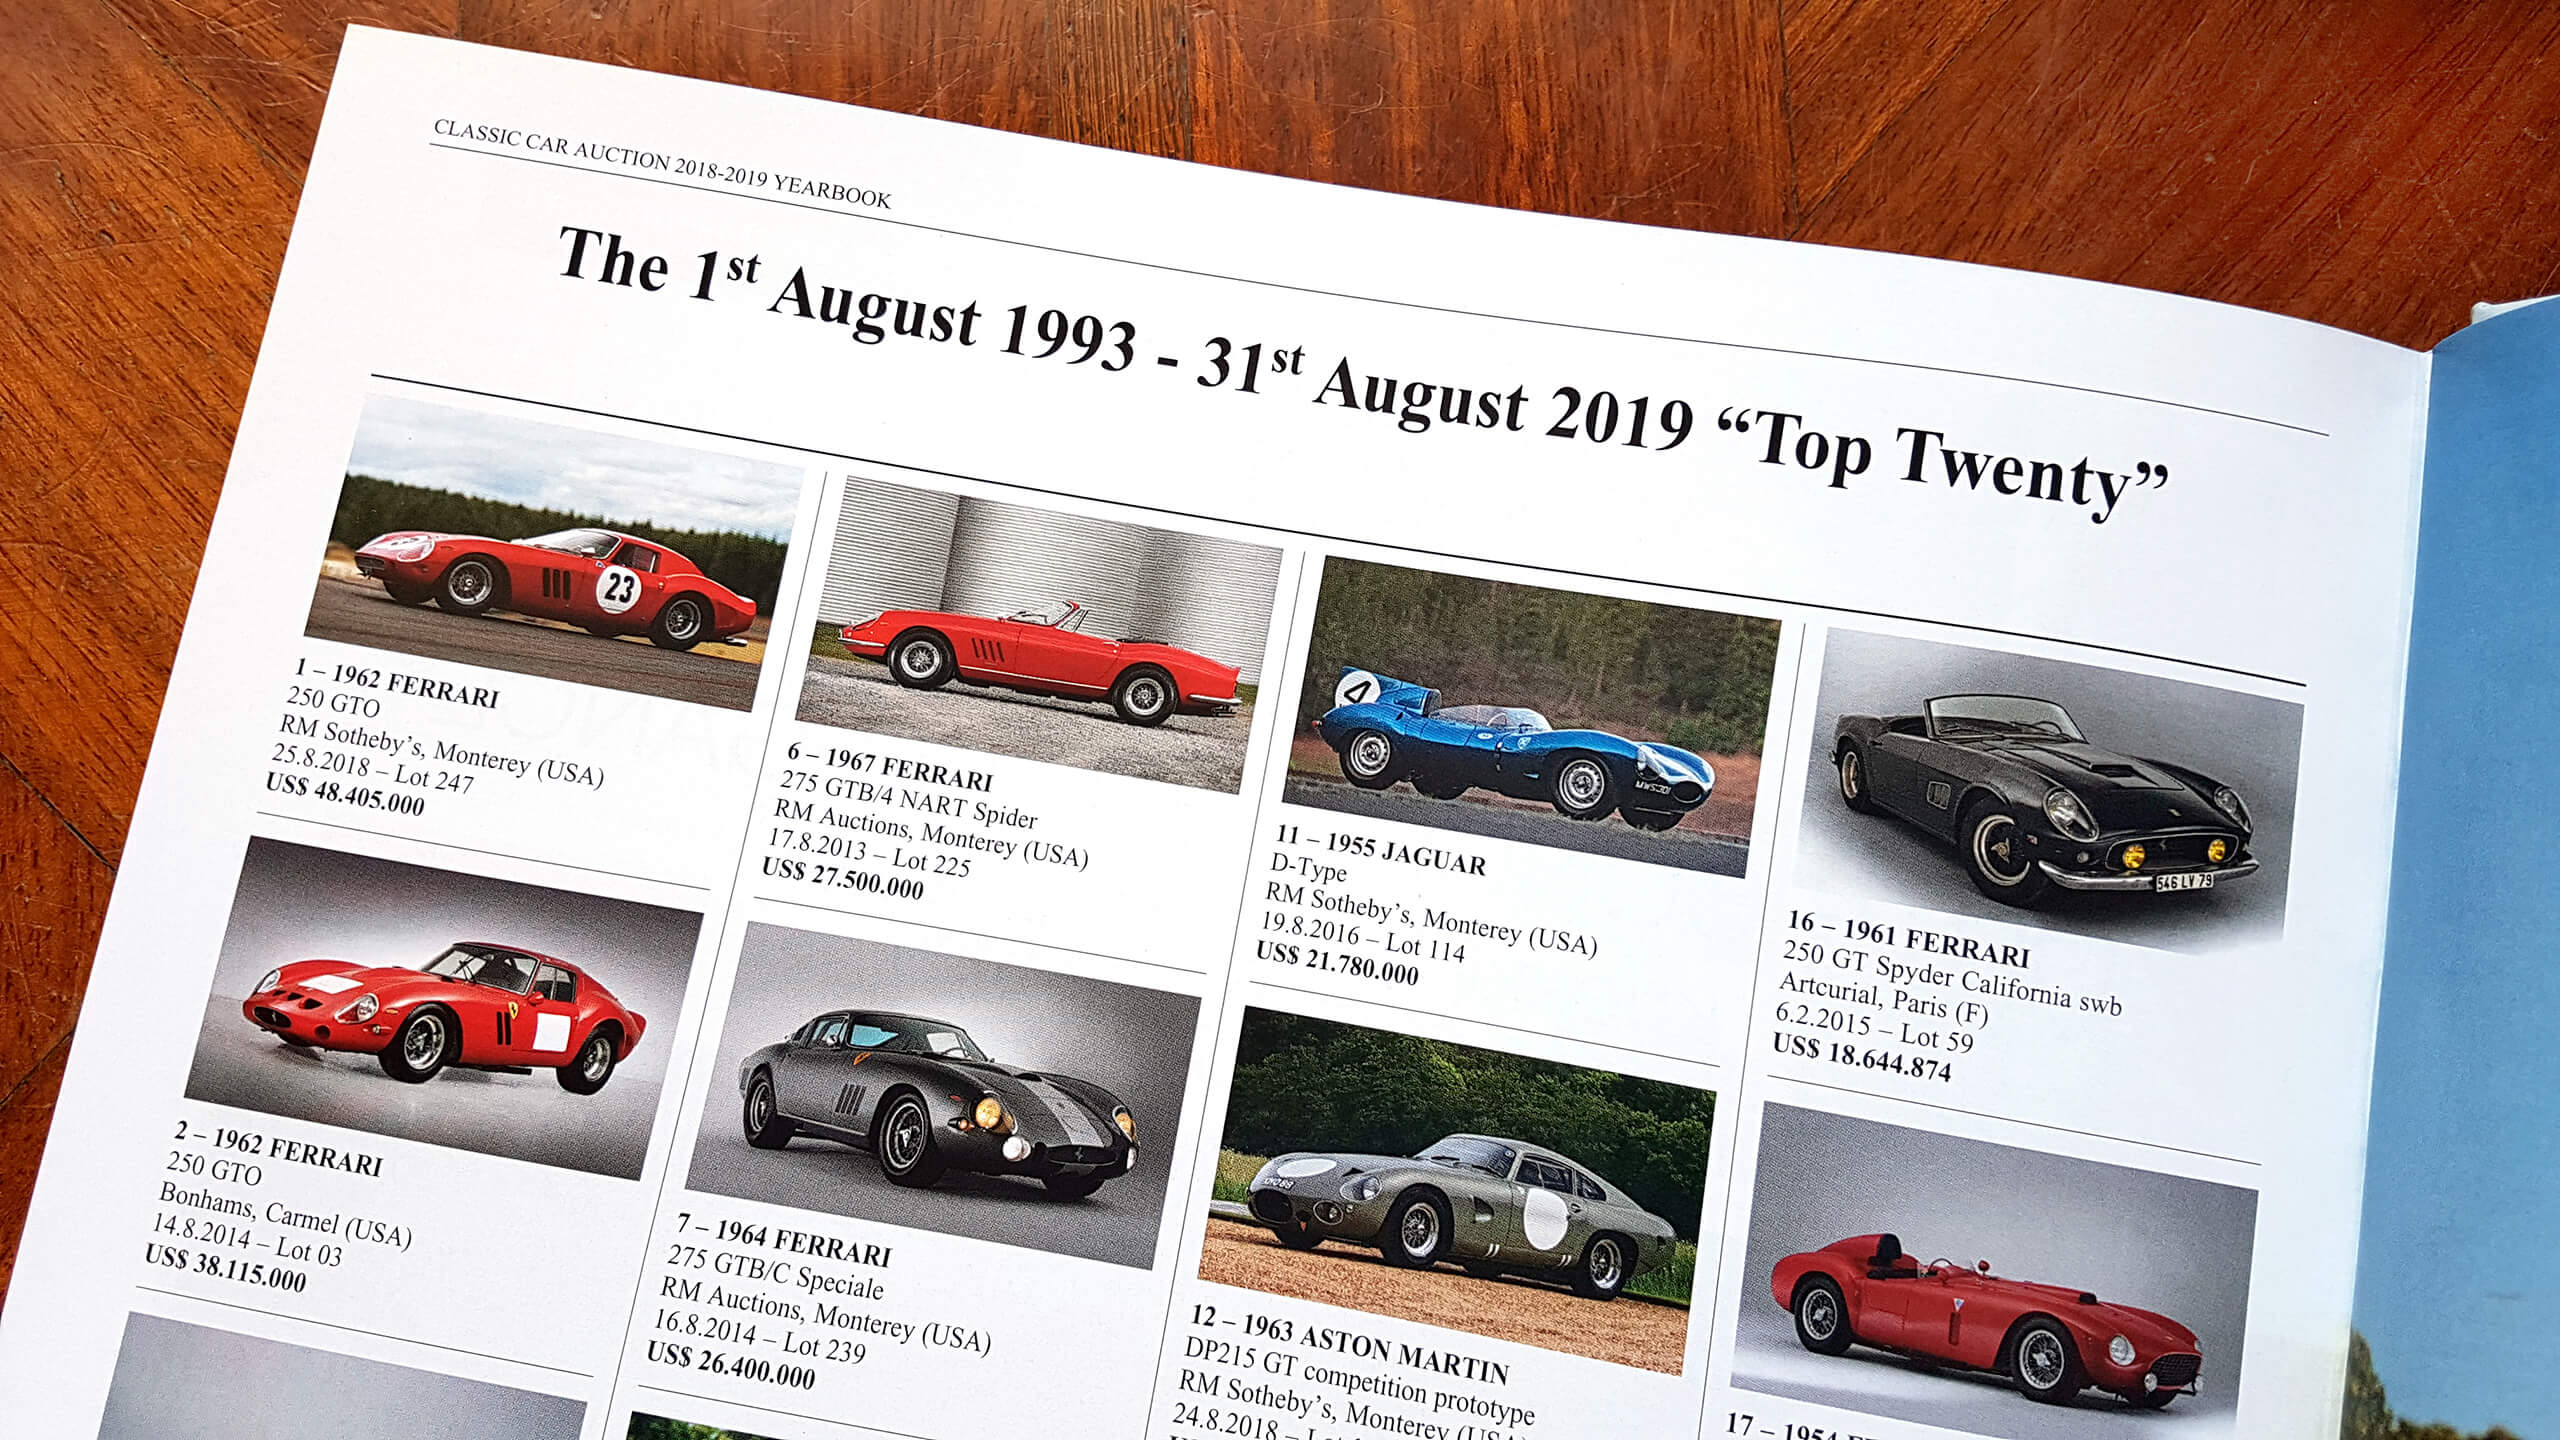 12 months in the making: Classic Car Auction Yearbook 2018-2019